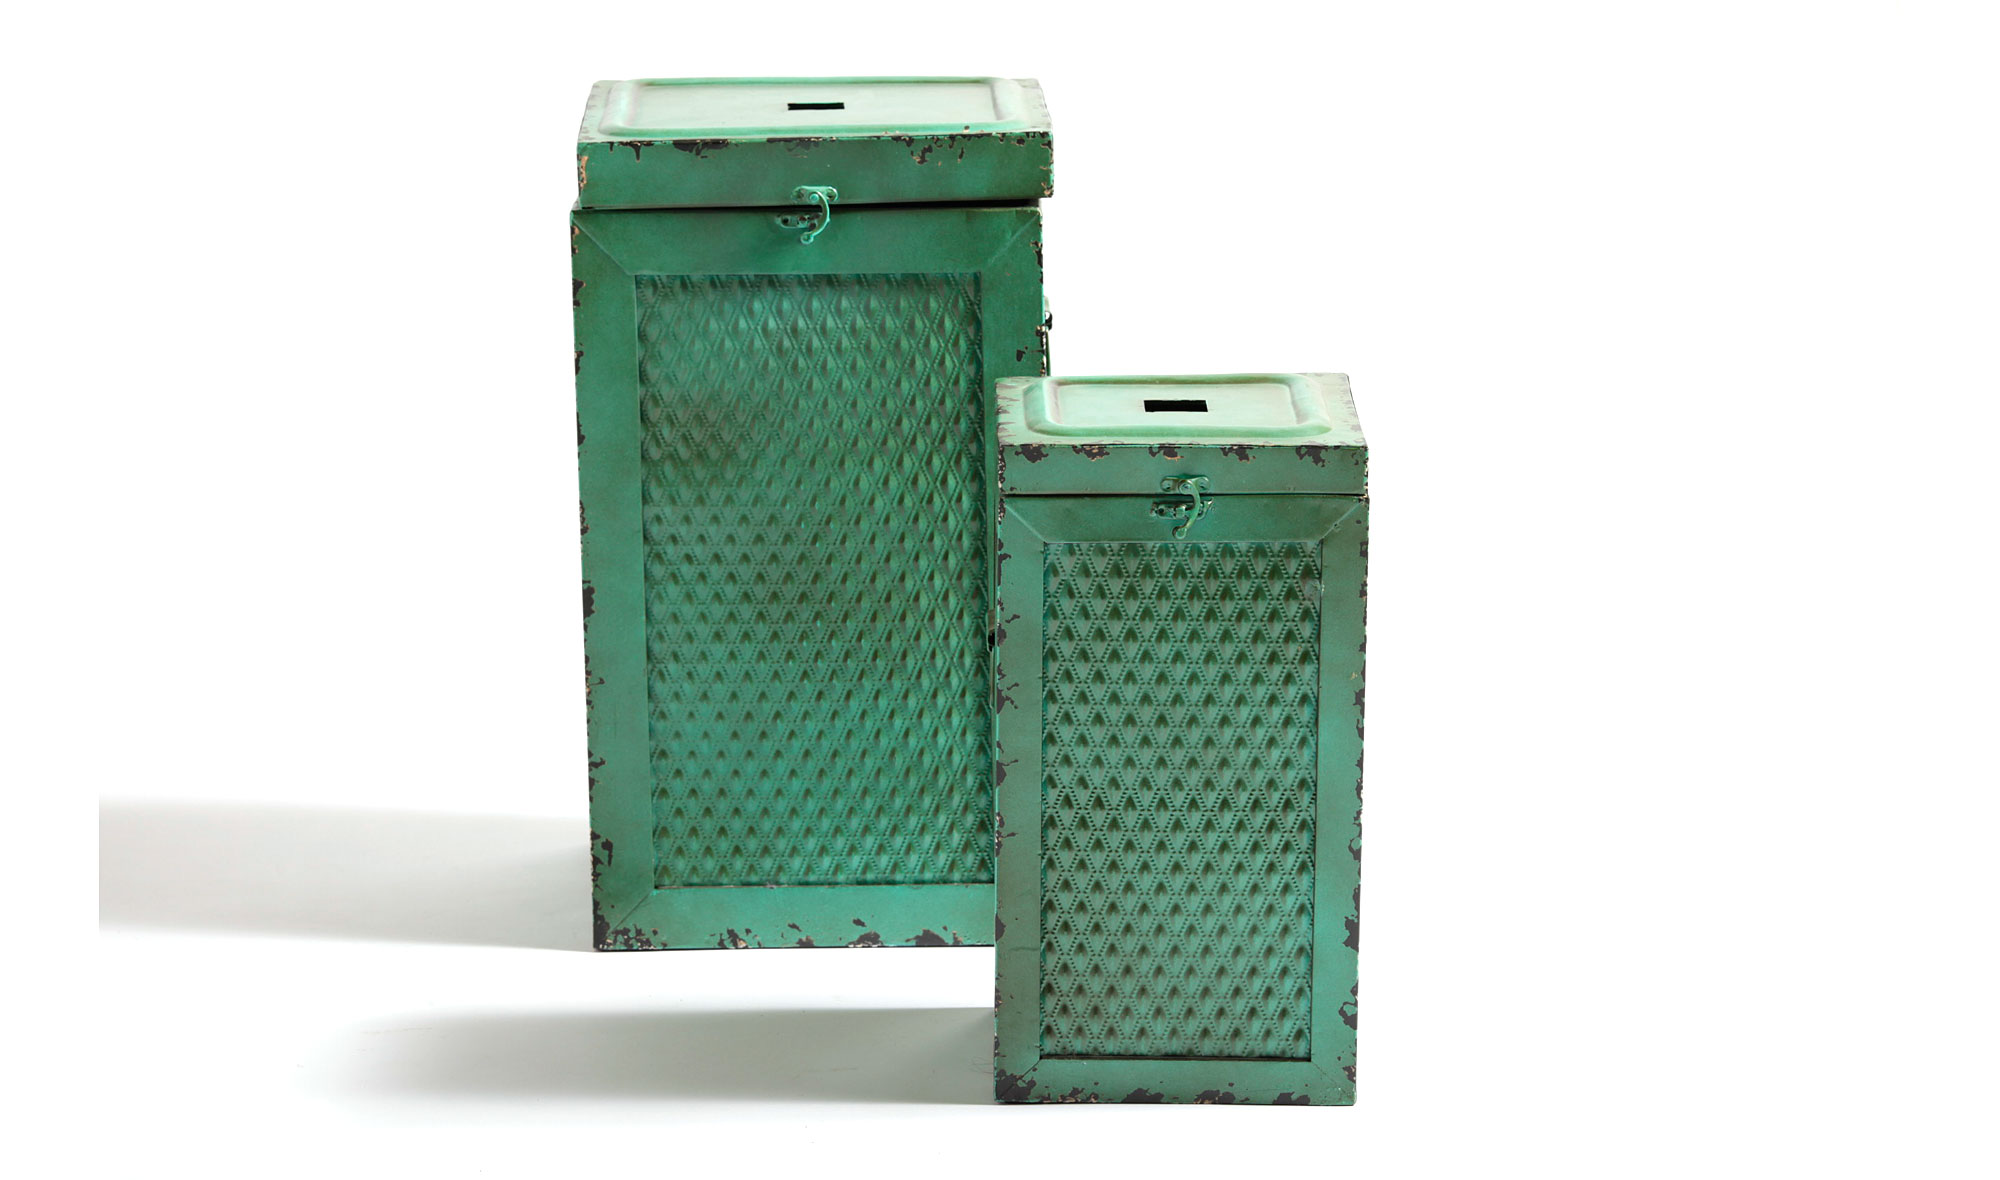 Set 2 taburetes caja verde vintage Antique